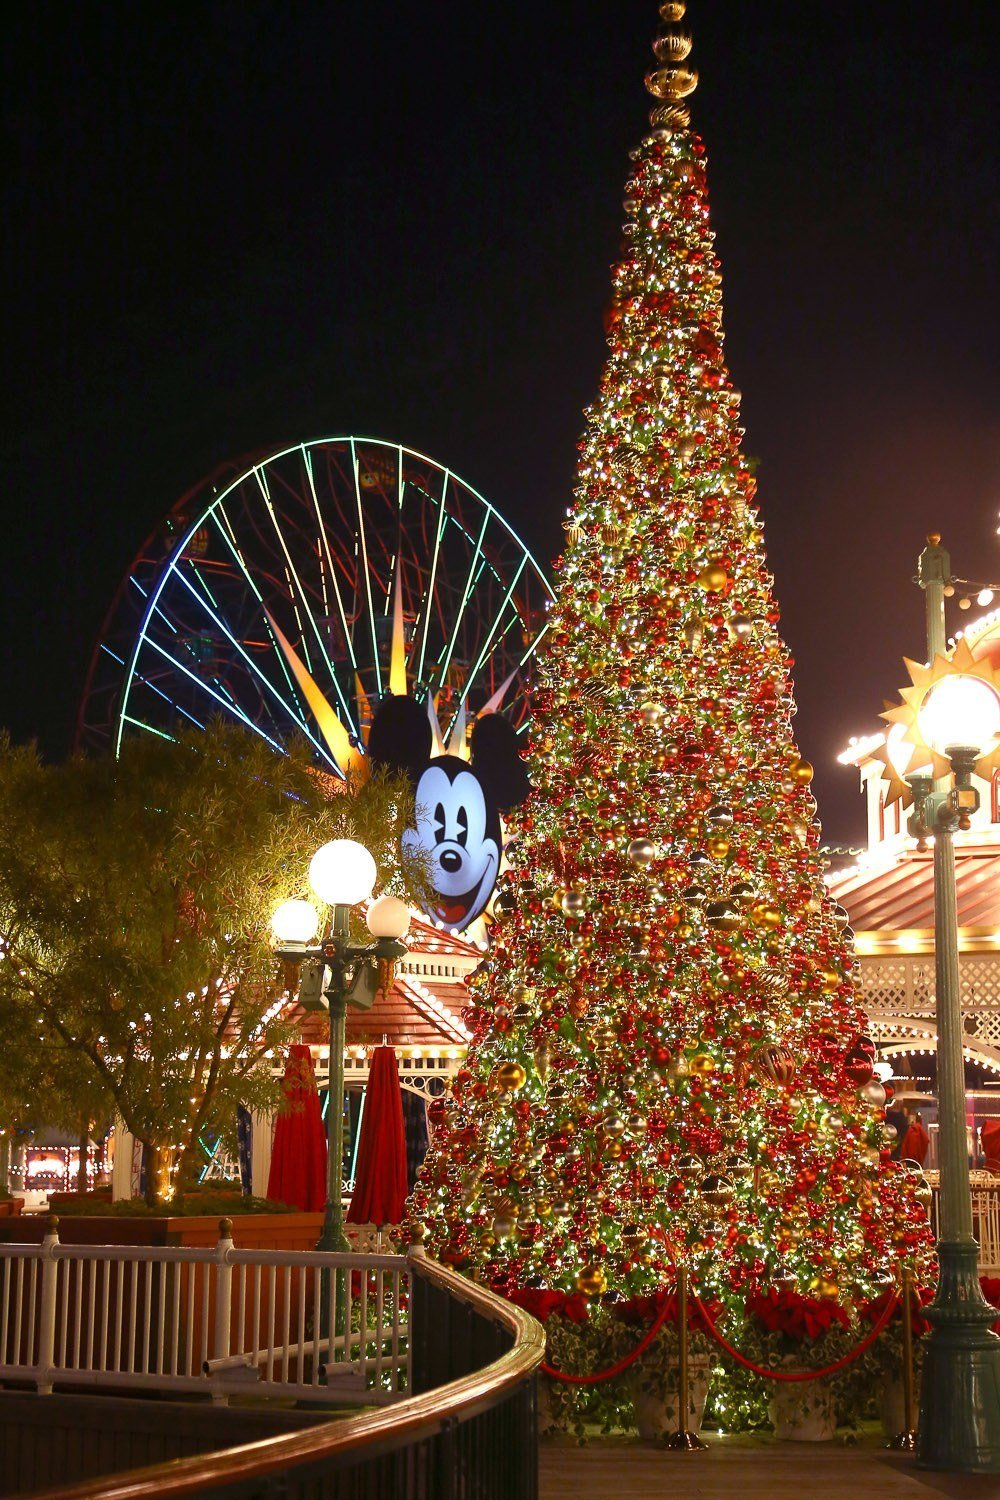 10 Reasons To Visit Disneyland Resort During The Holidays